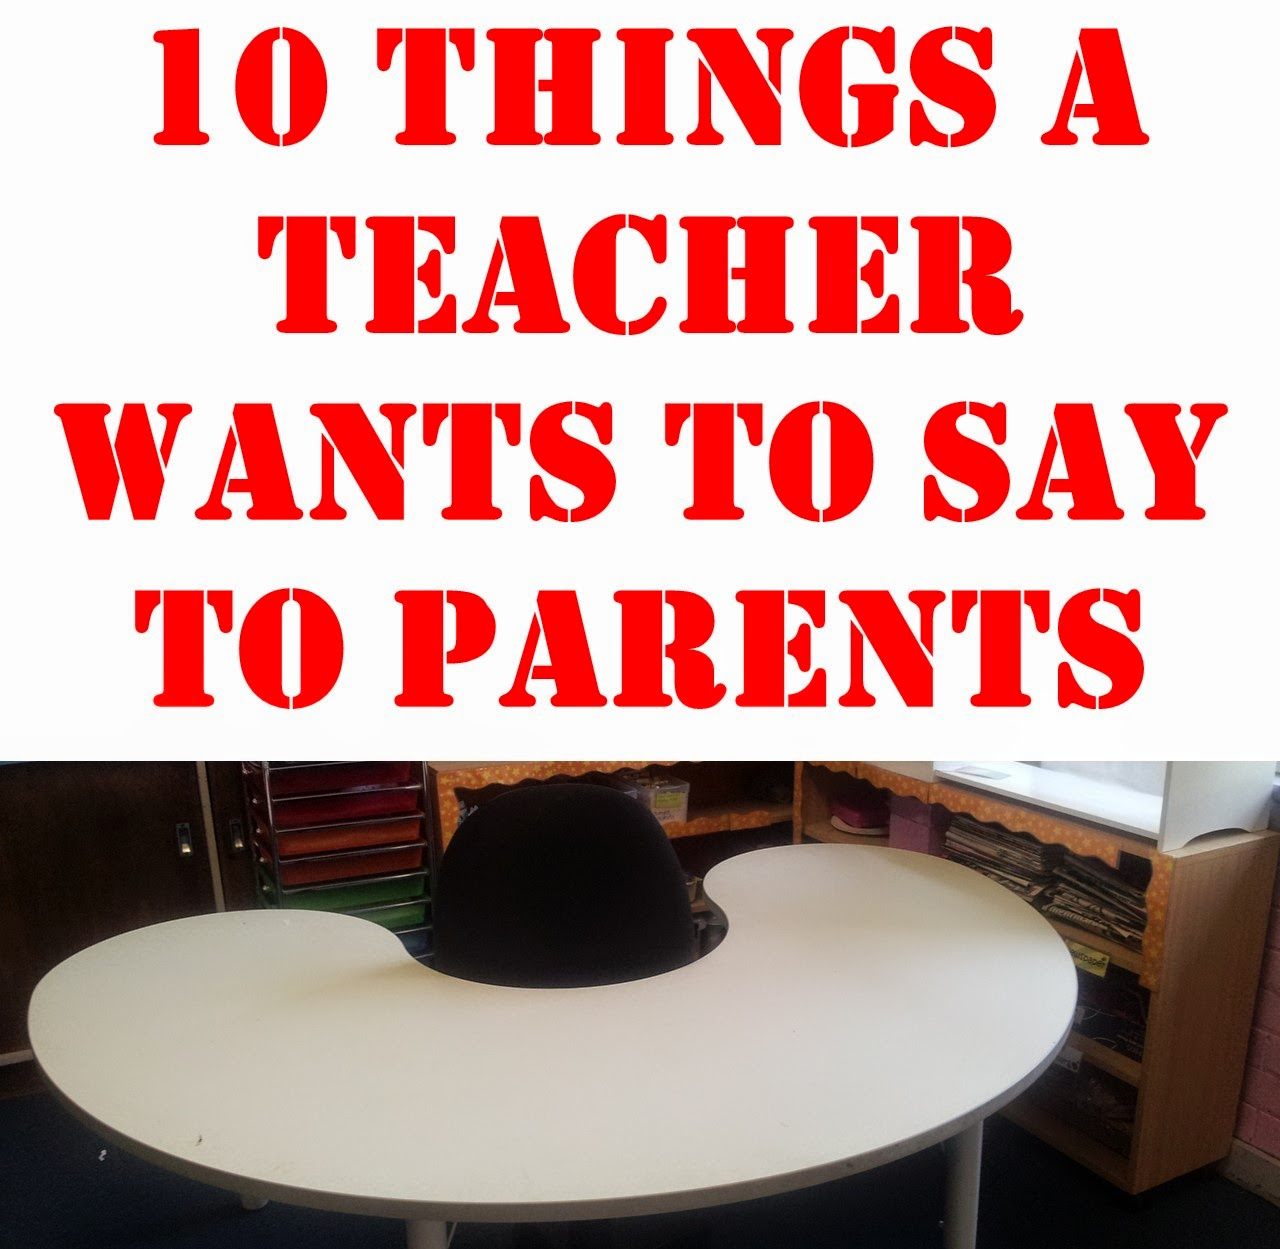 MrsAmy123: 10 Things a Teacher Wants to Say to Parents